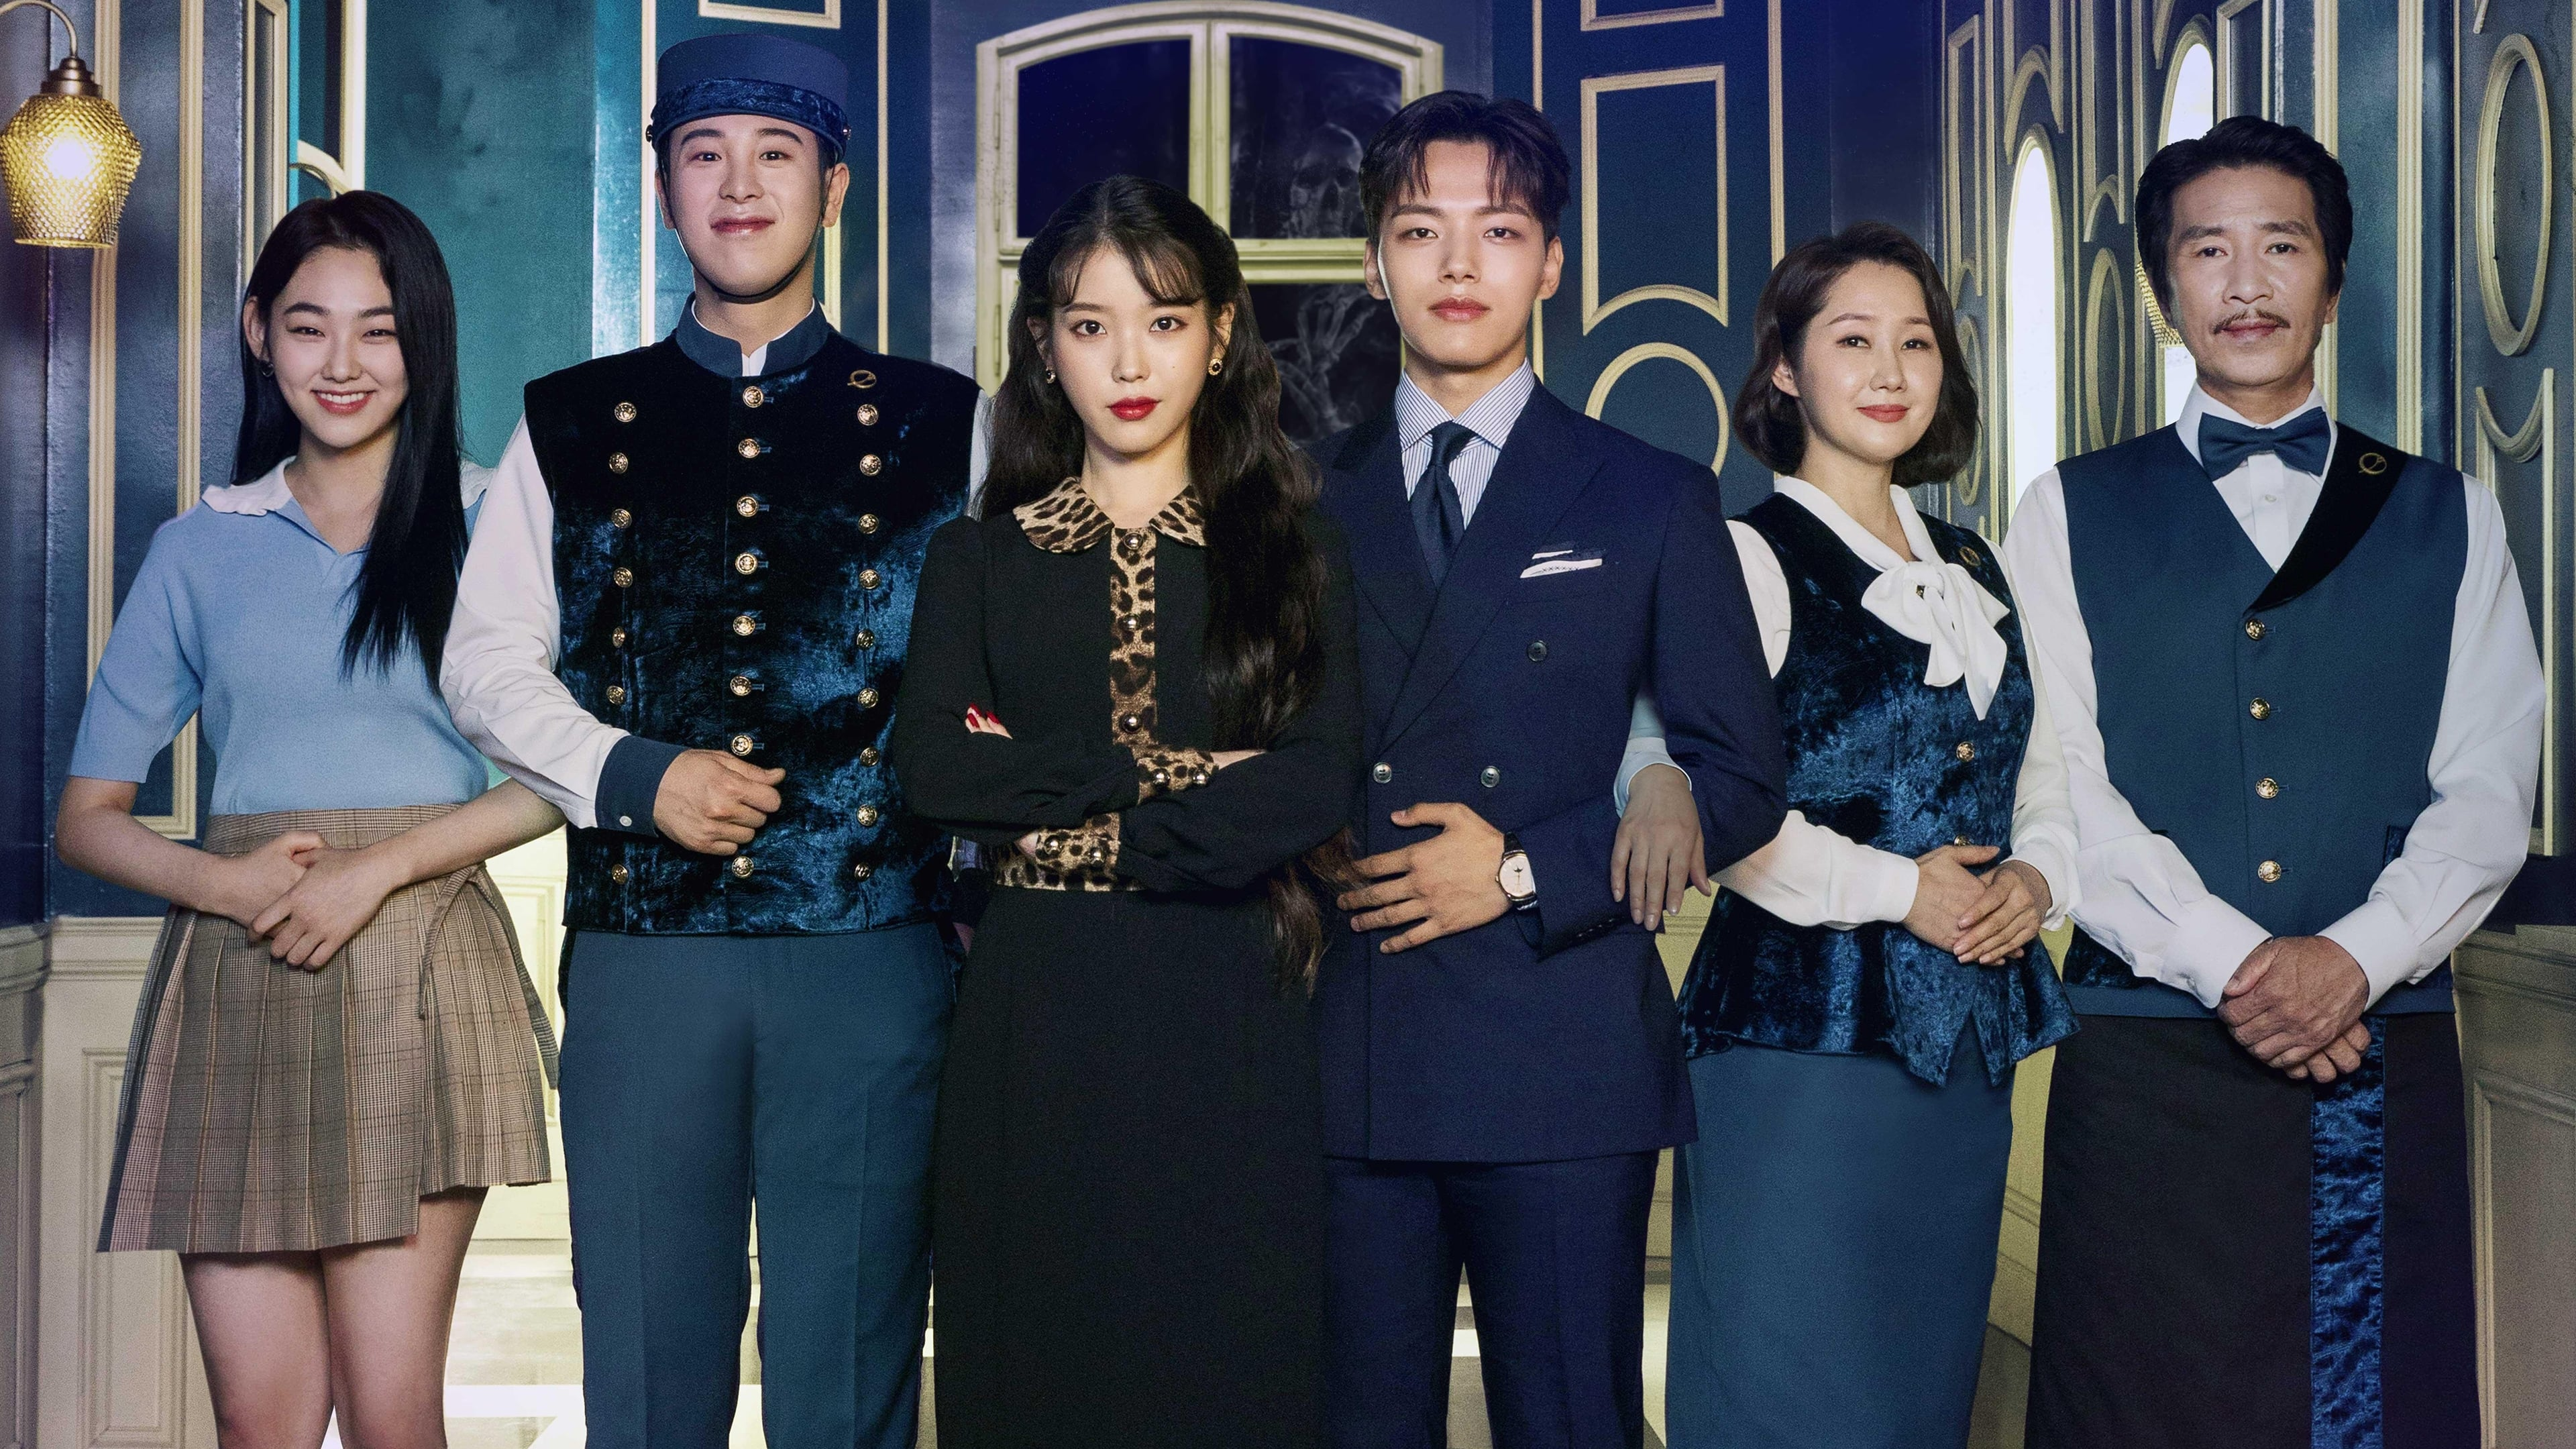 Skydance Television working on adaptation of Hotel Del Luna